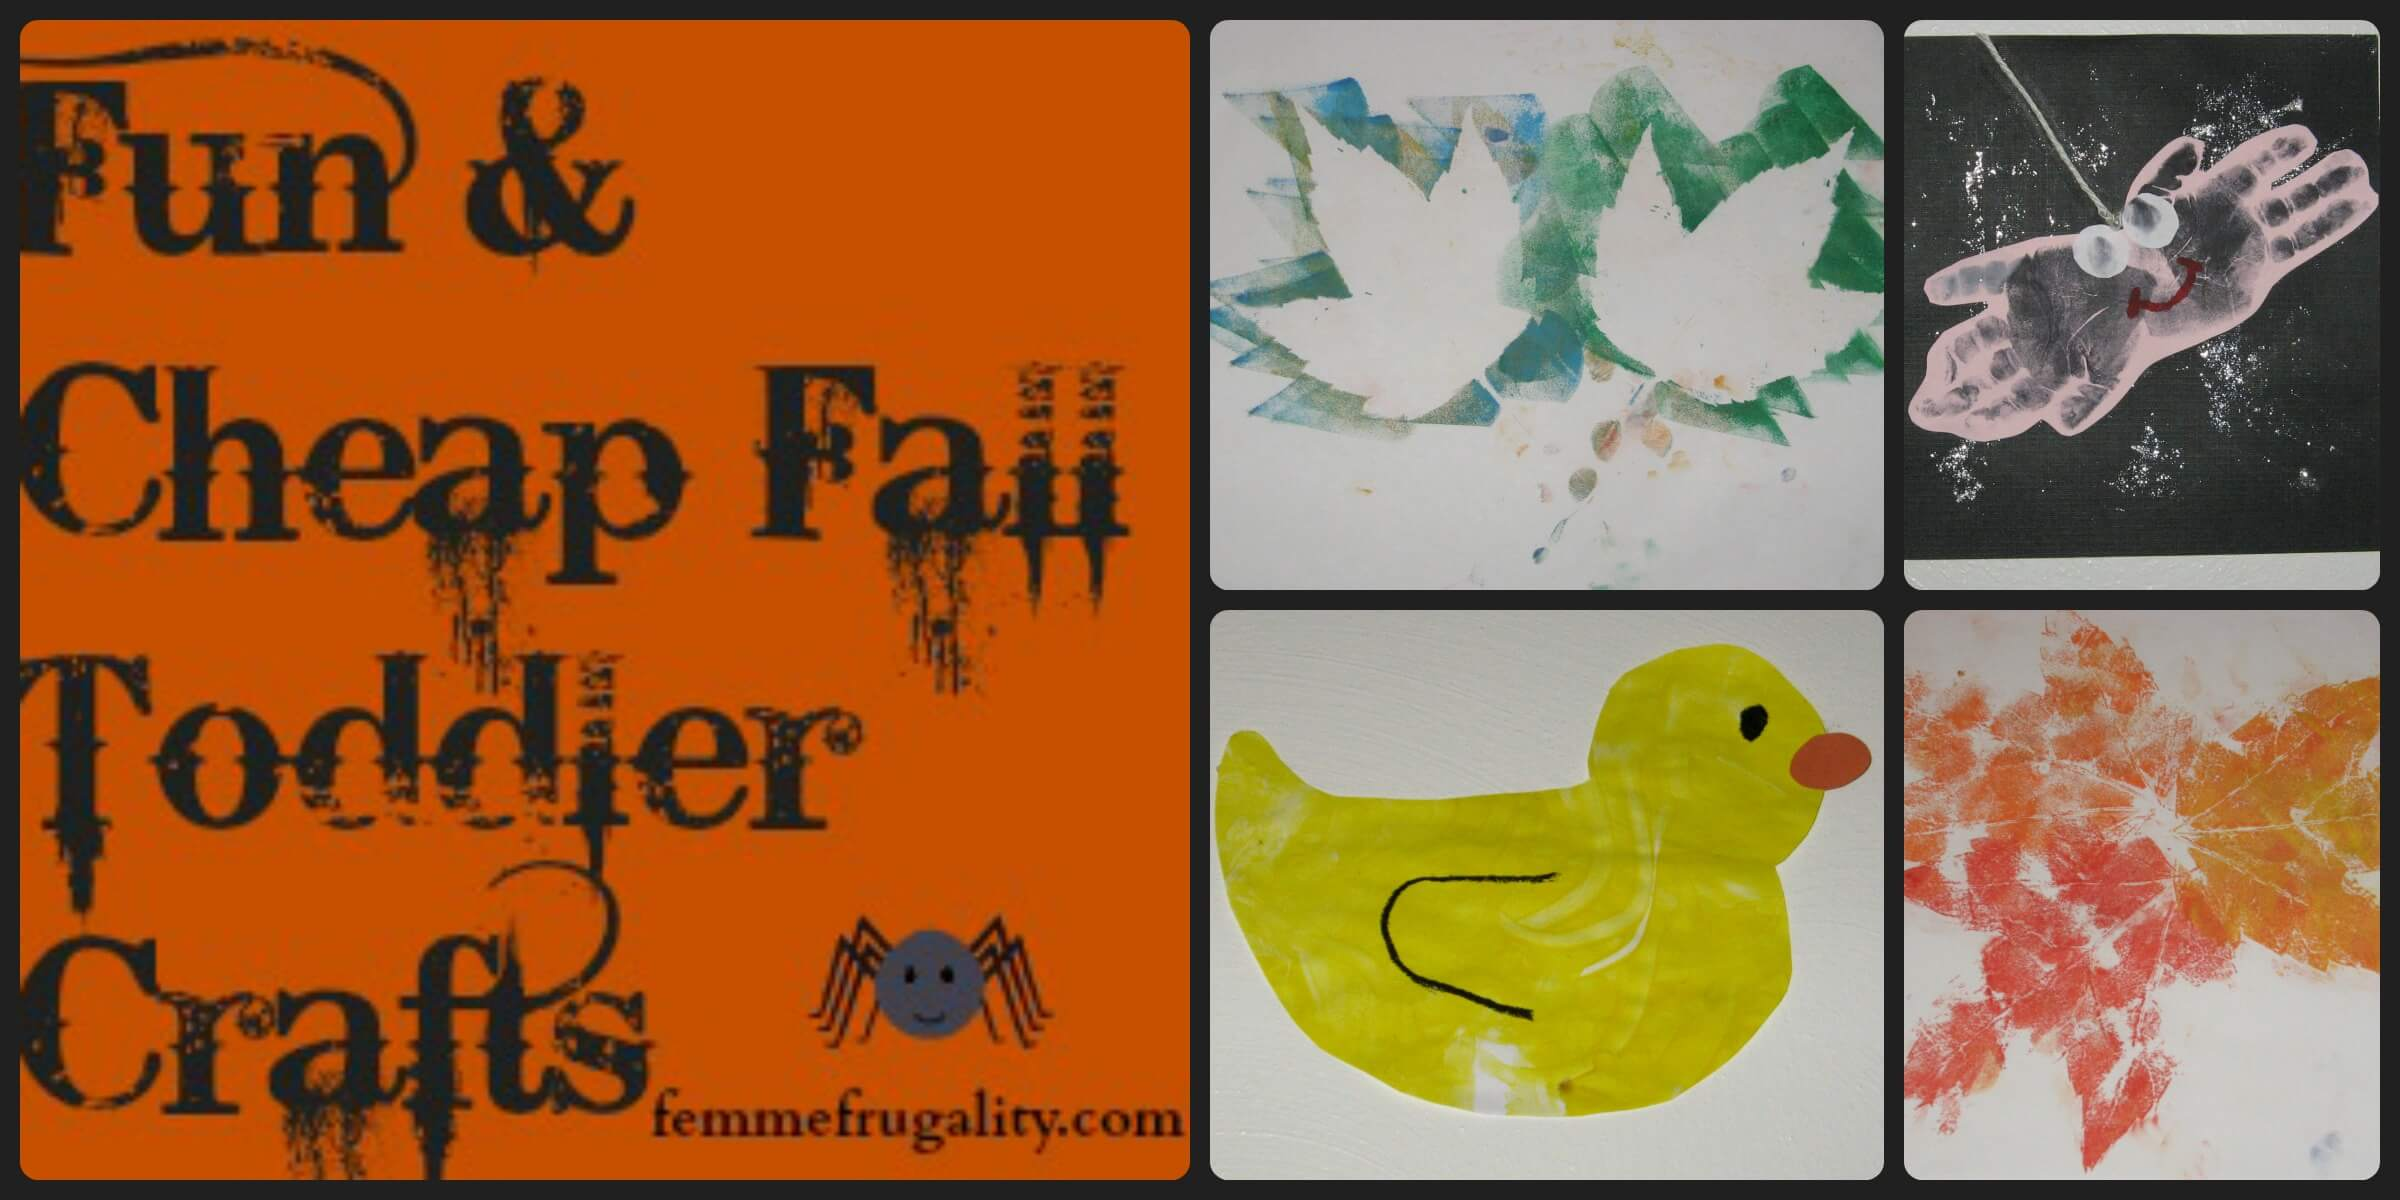 Fun Cheap Fall Toddler Crafts Femme Frugality